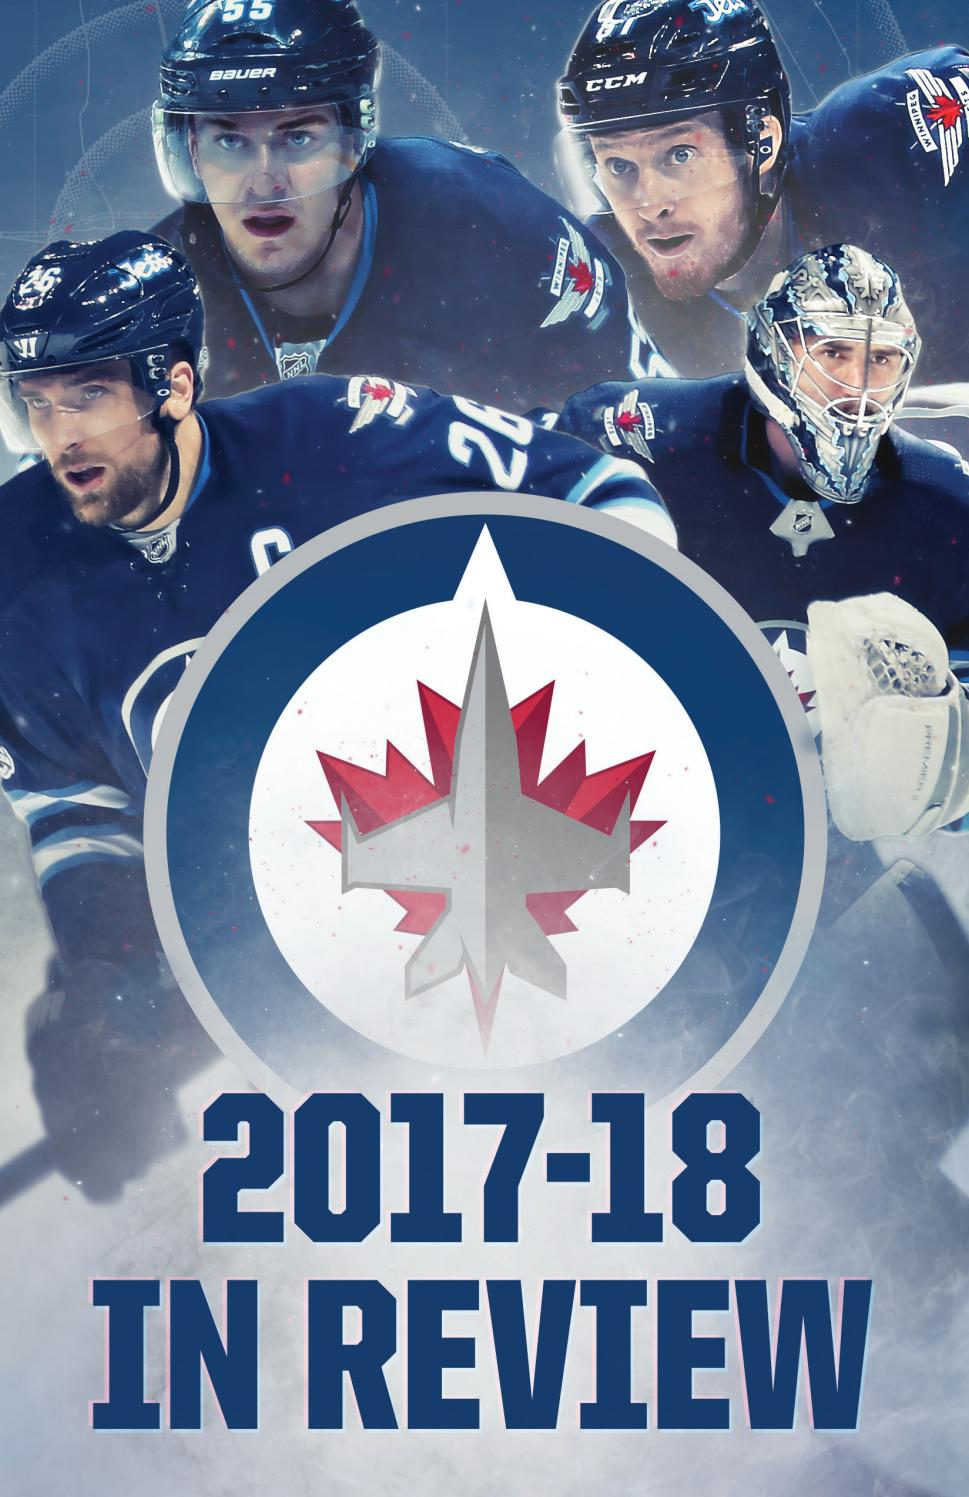 Winnipeg Jets 2017 18 Season In Review By Winnipeg Jets Issuu